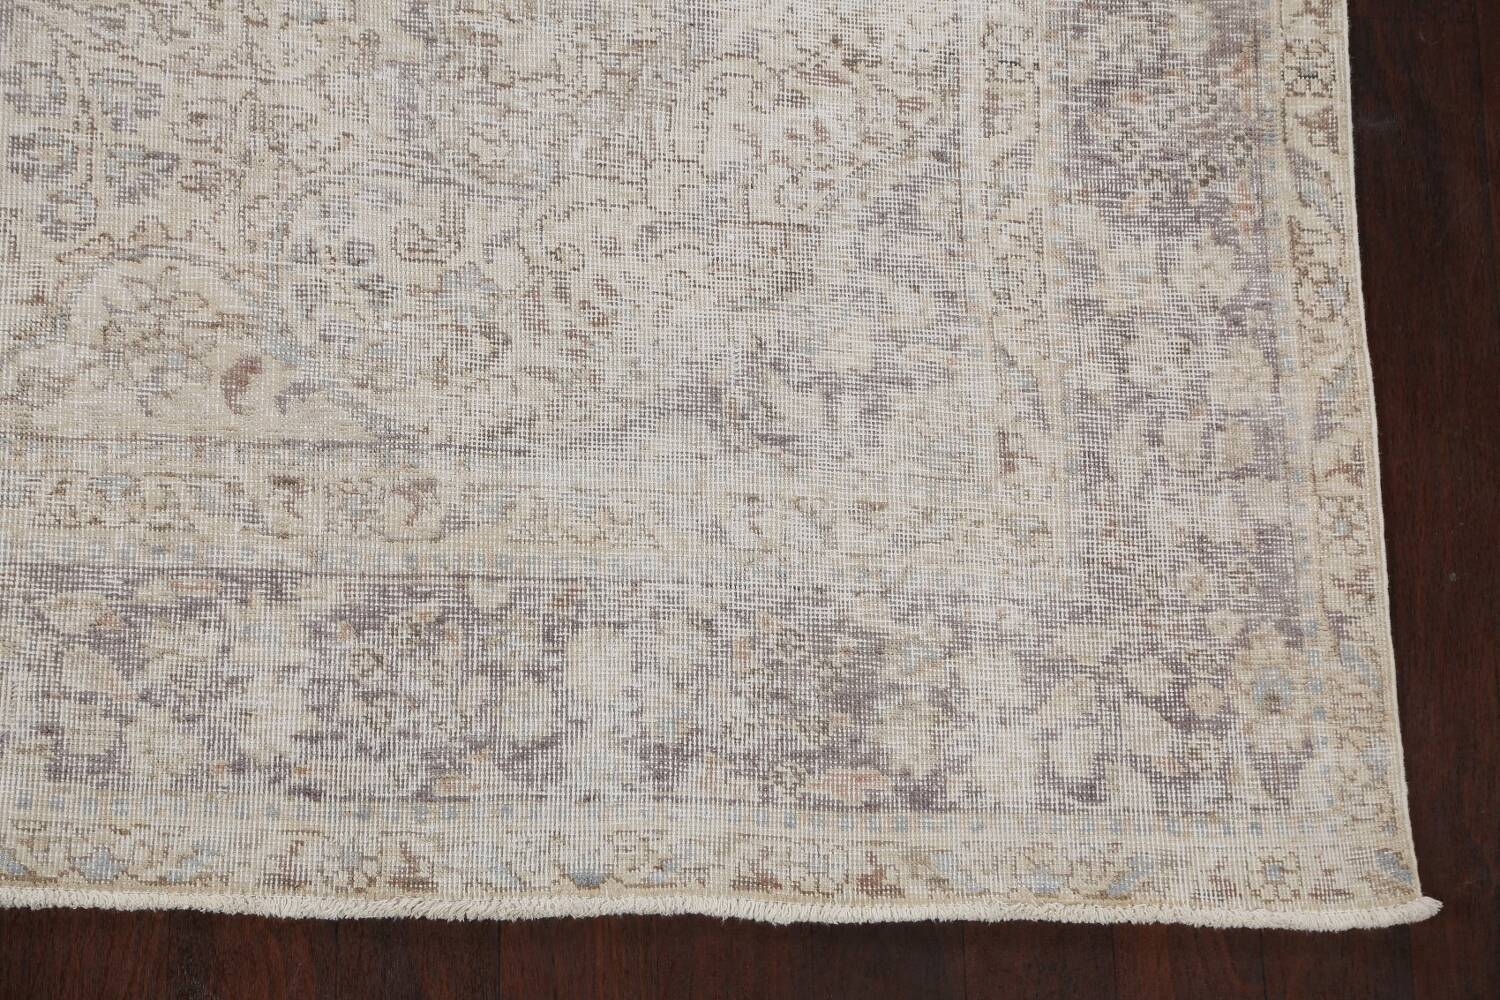 Muted Distressed Tabriz Persian Area Rug 8x11 image 5